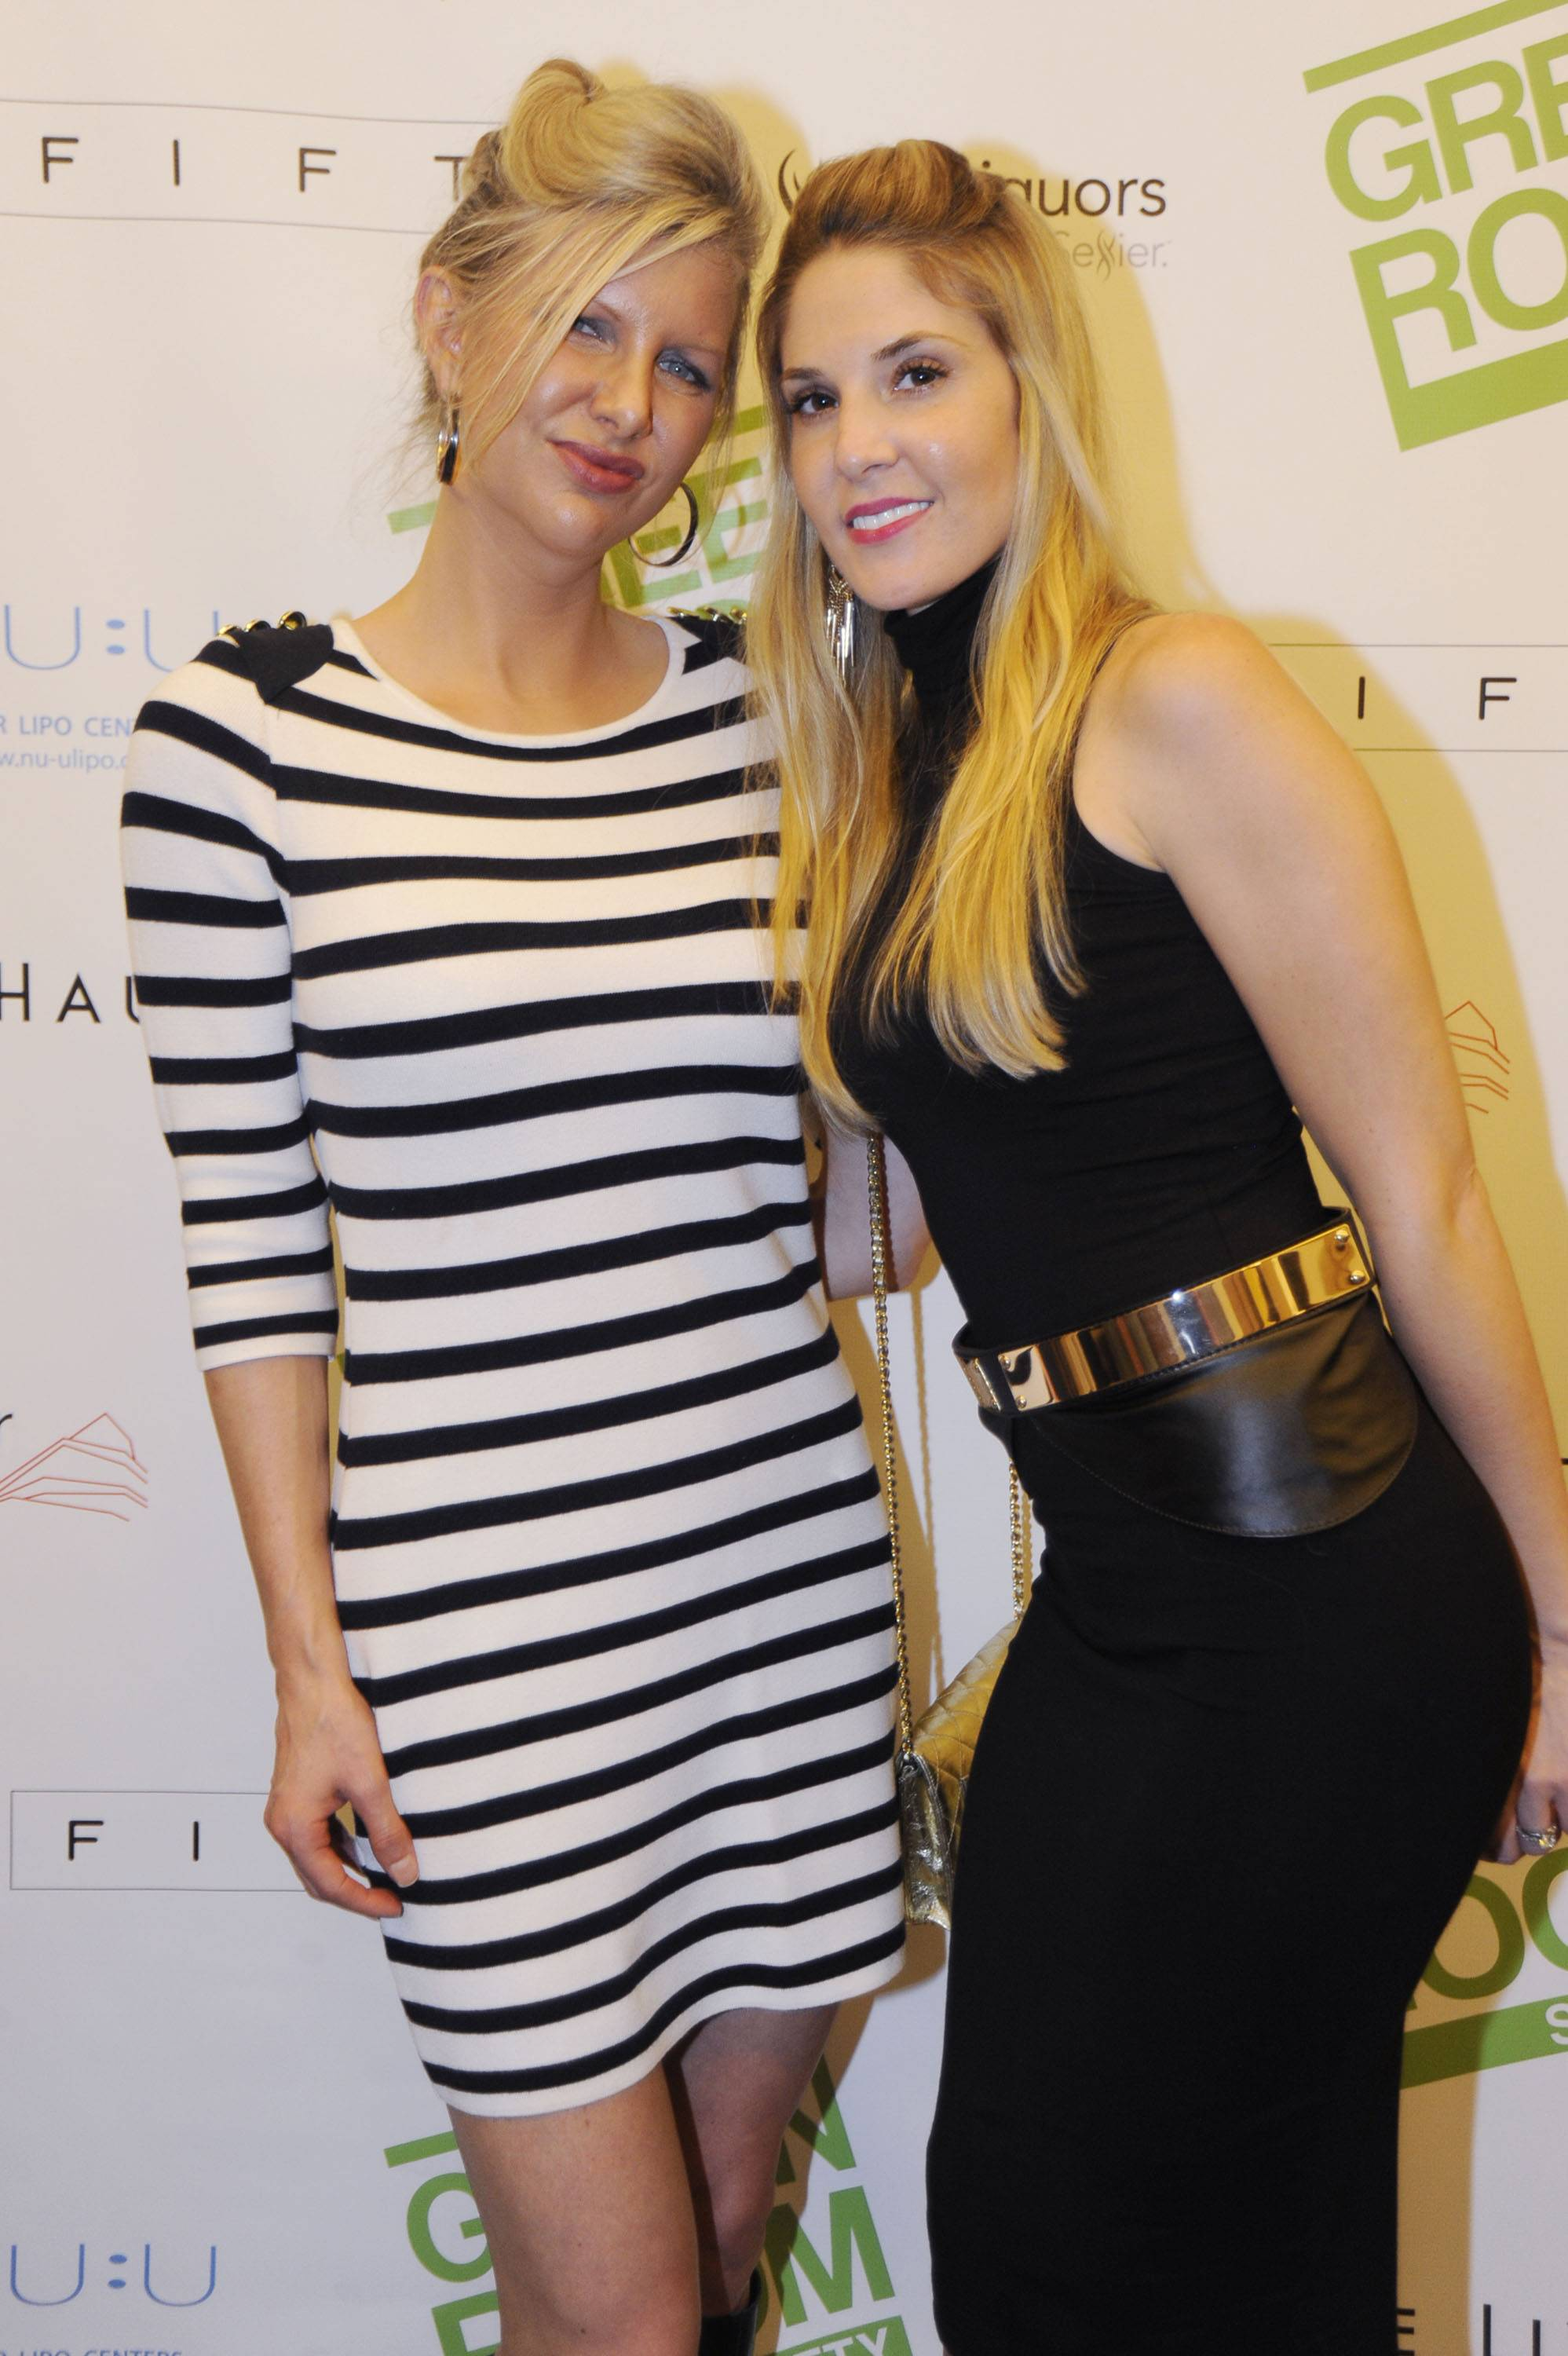 April Donelson from Haute Living and Jillian Posner at the Green Room Society's season kick-off event